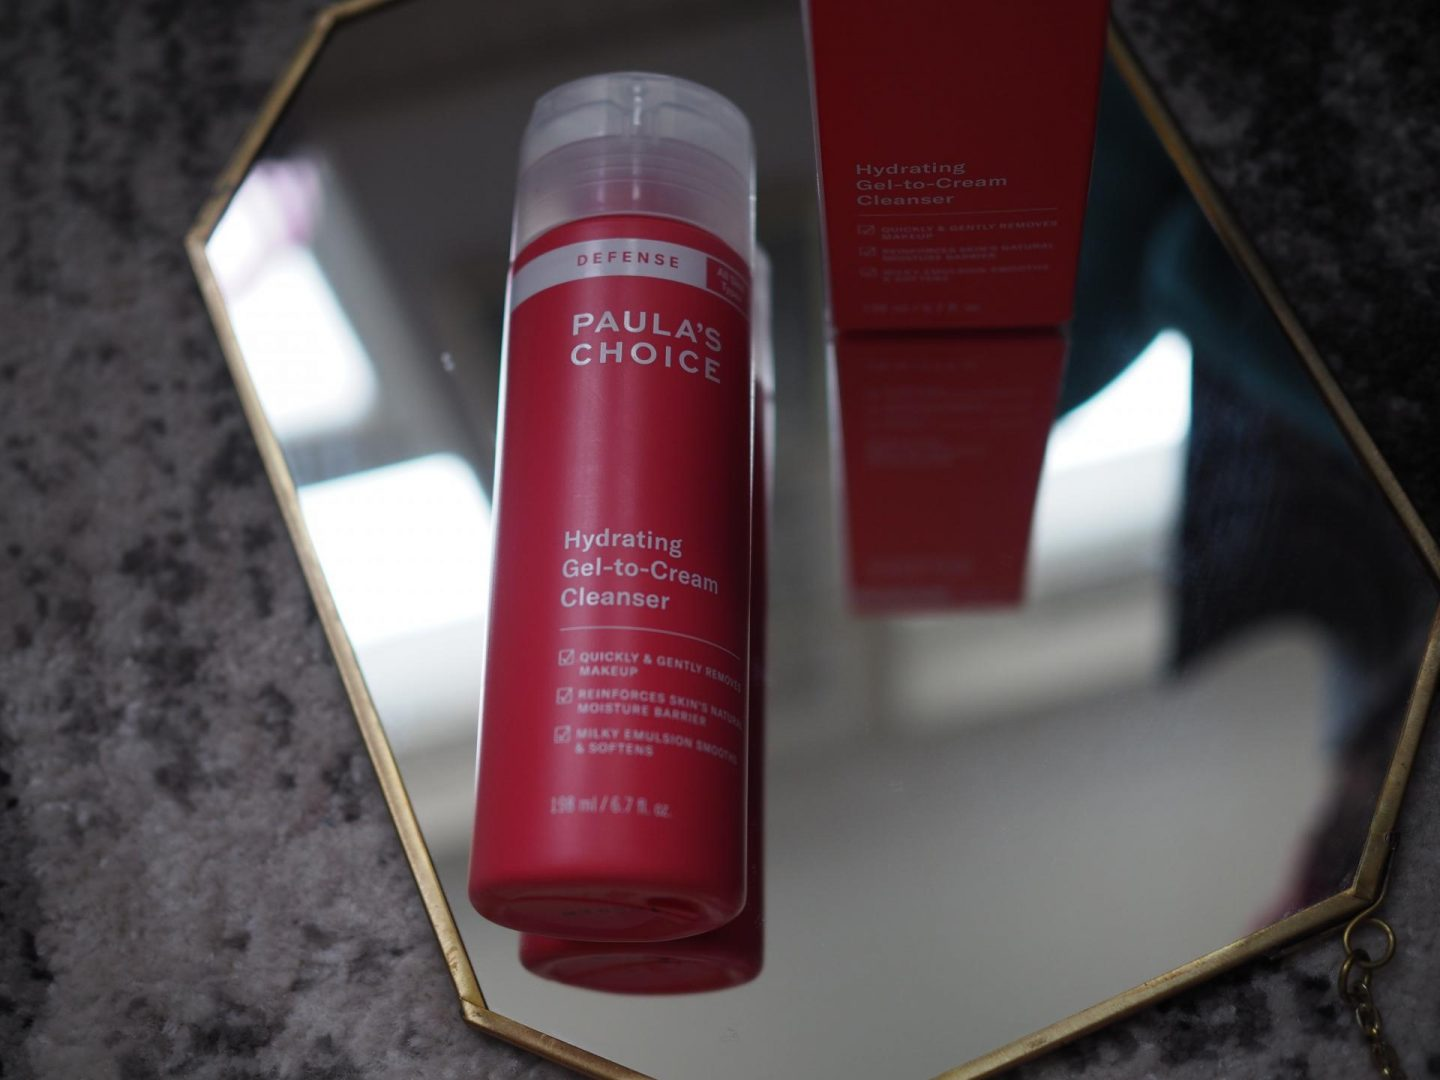 Paula's Choice Hydrating Gel to Cream Cleanser